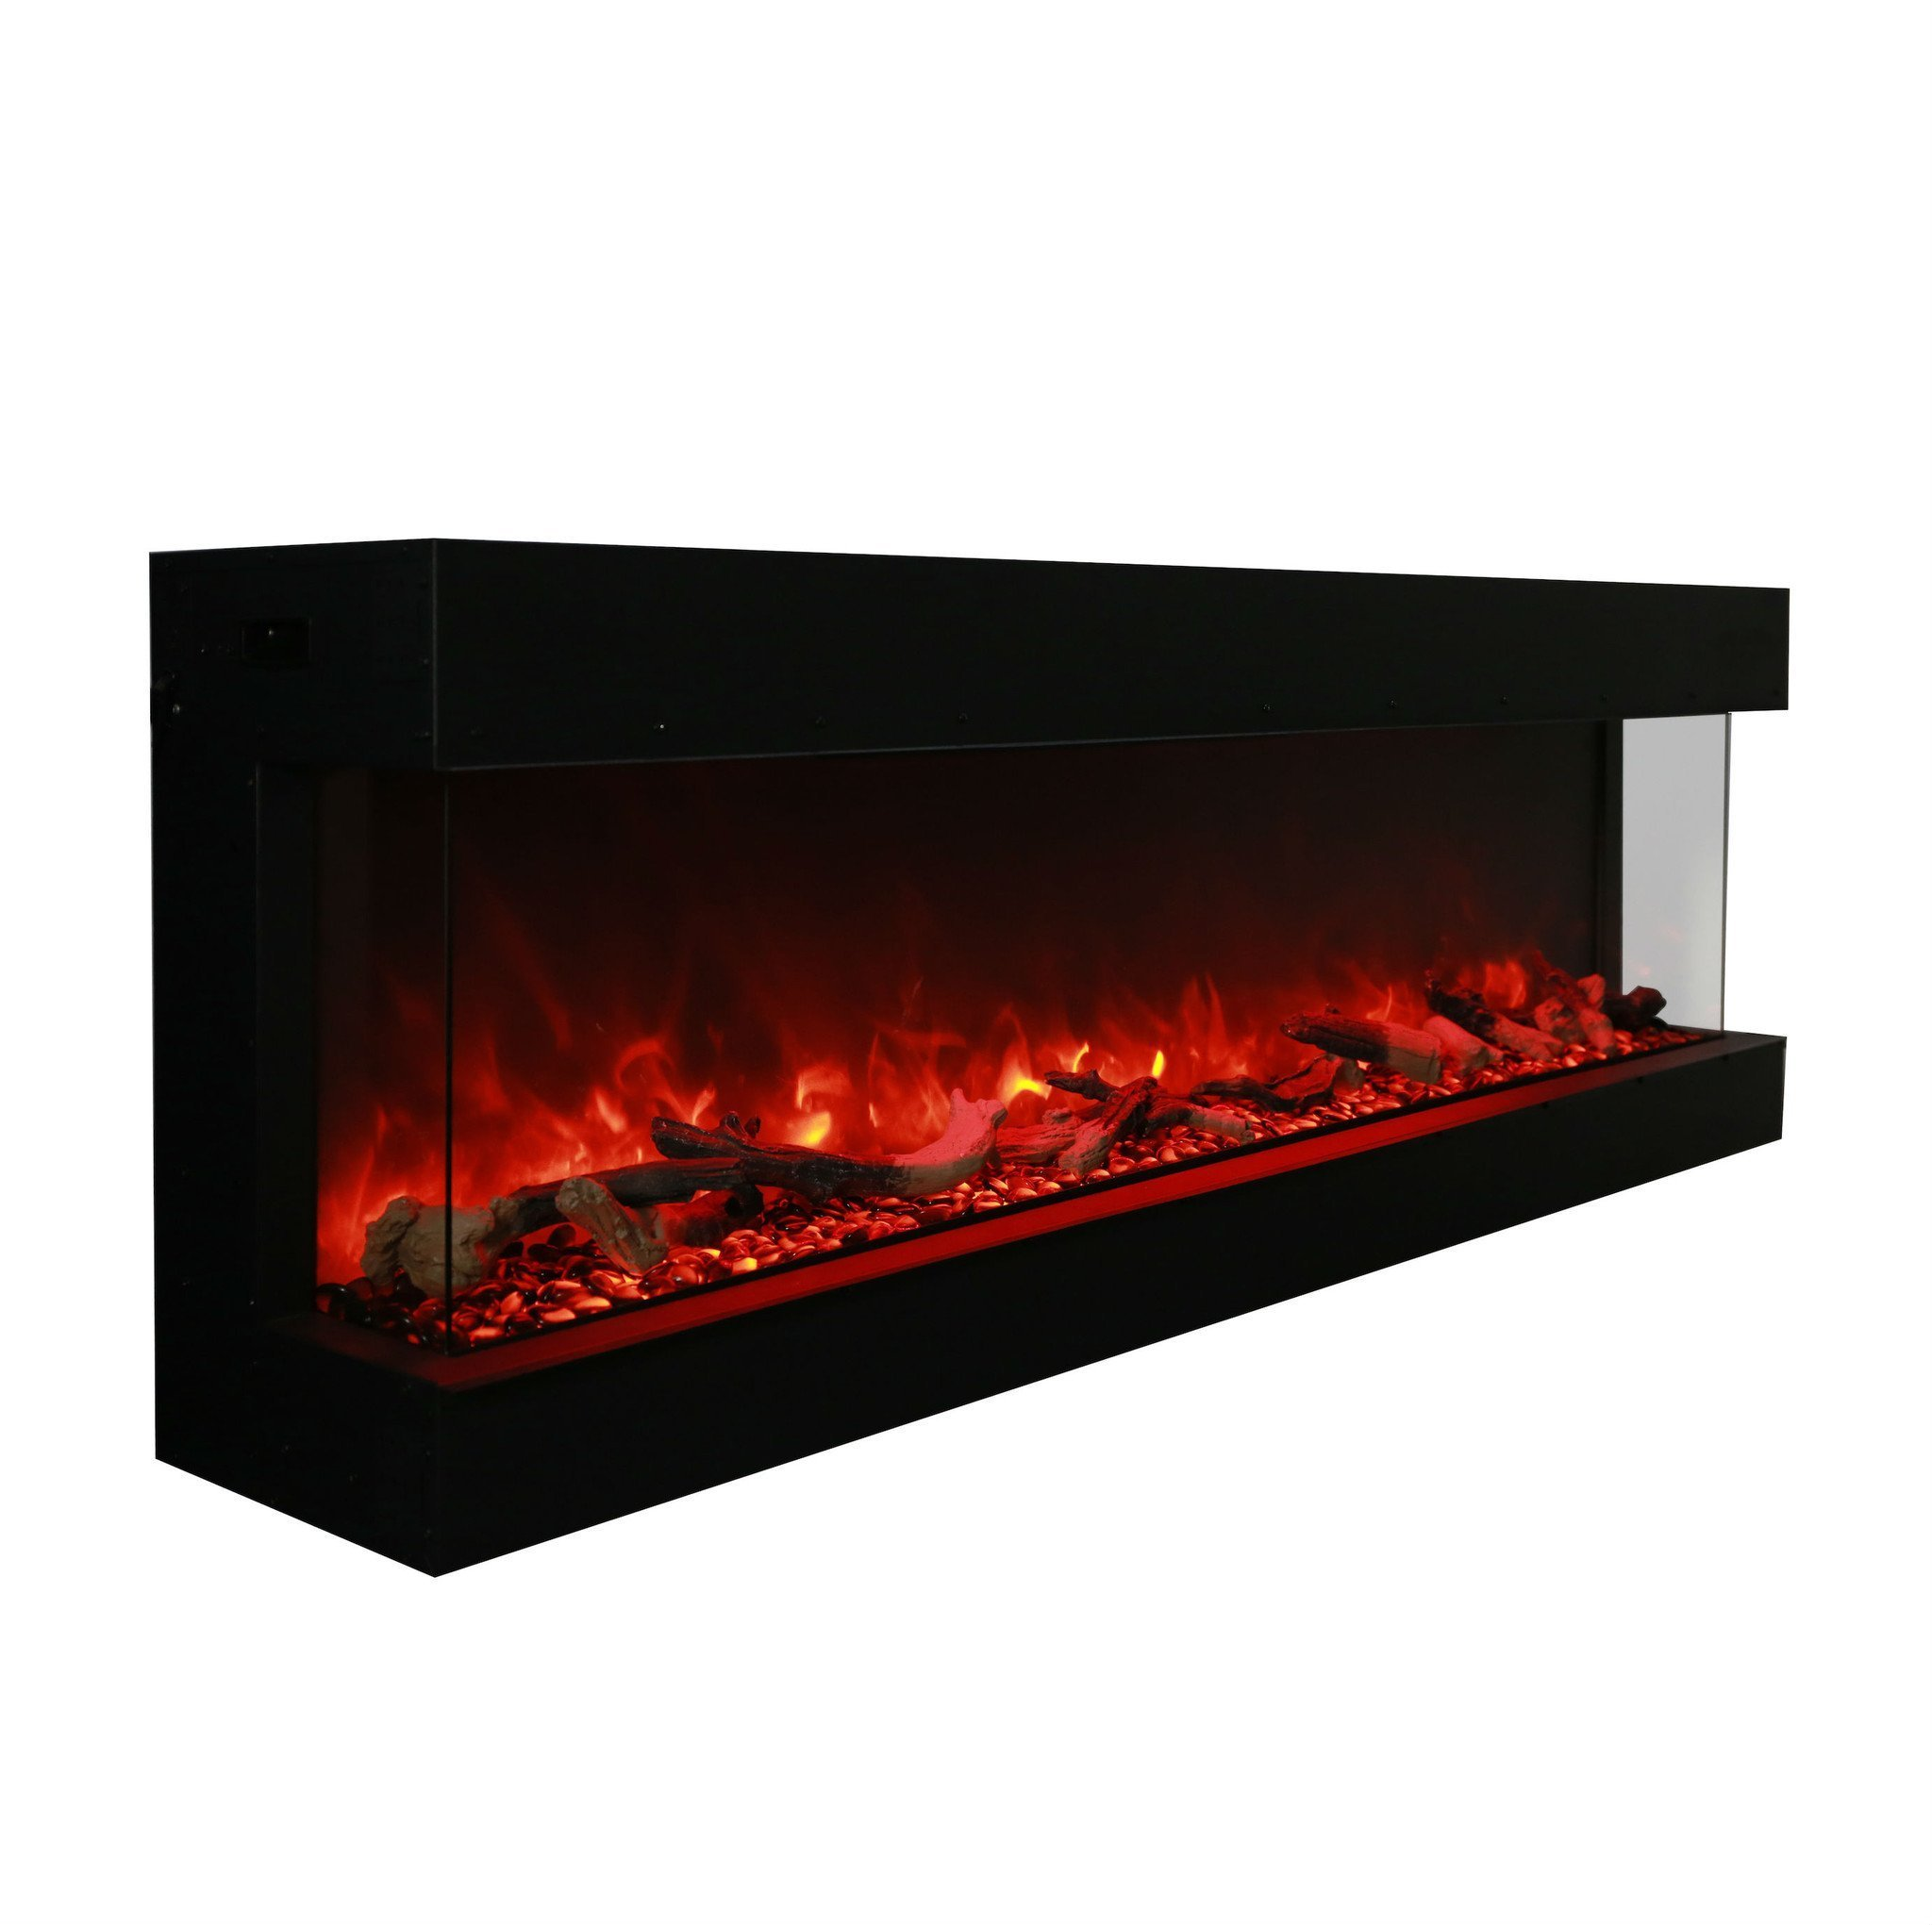 65 Inch Electric Fireplace Fresh Outdoor Electric Fireplaces On Sale Modern Blaze